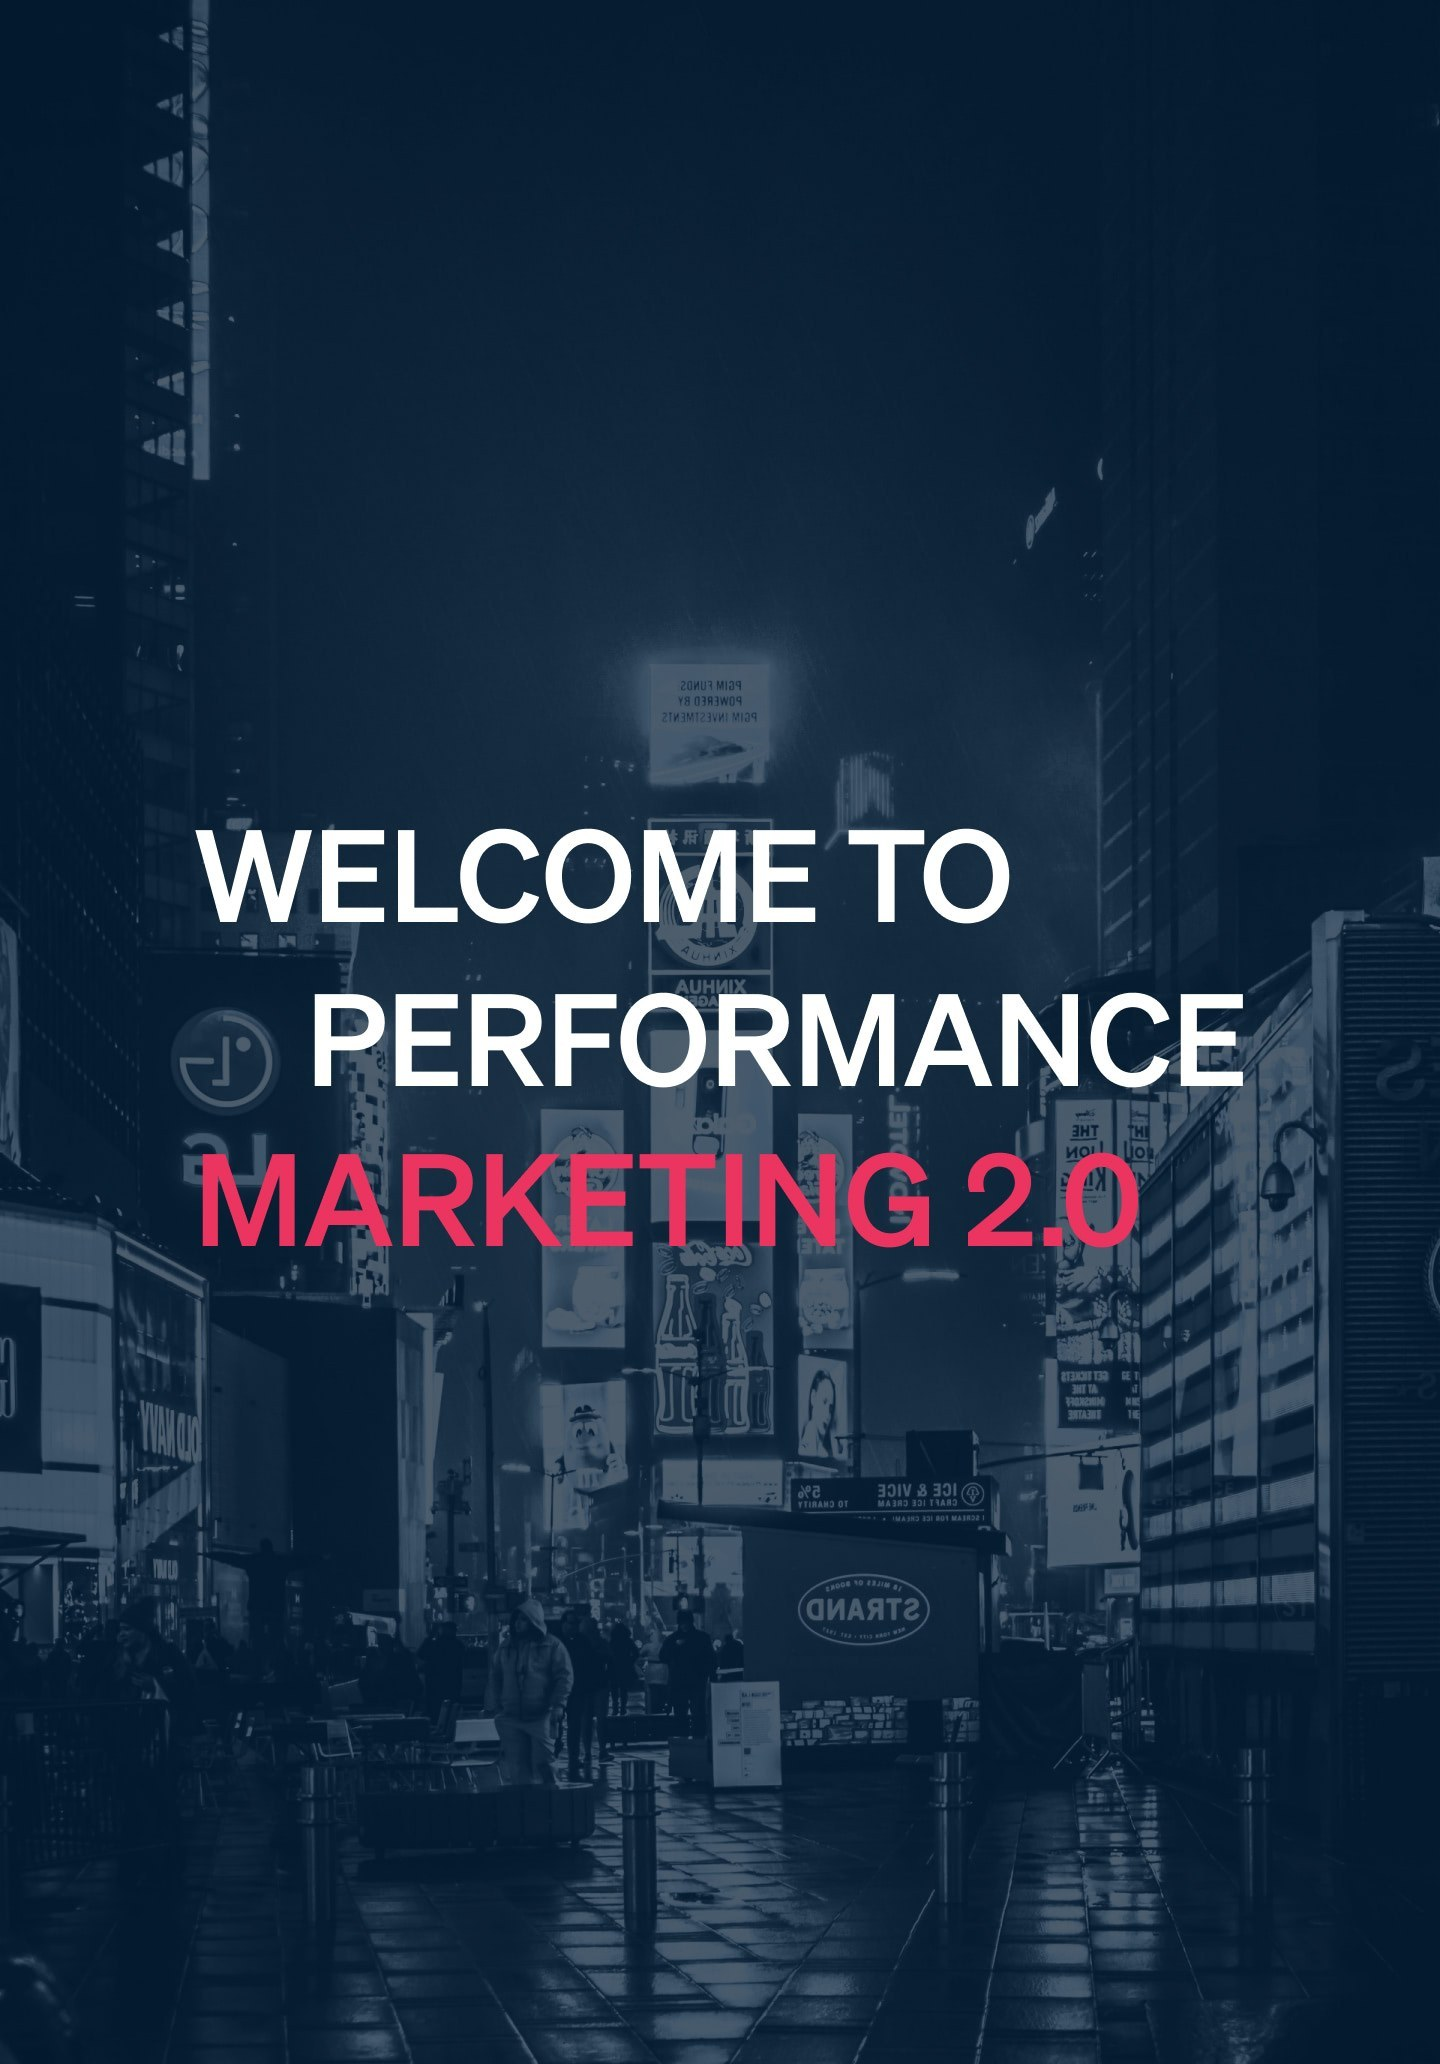 Img about perfomance marketing